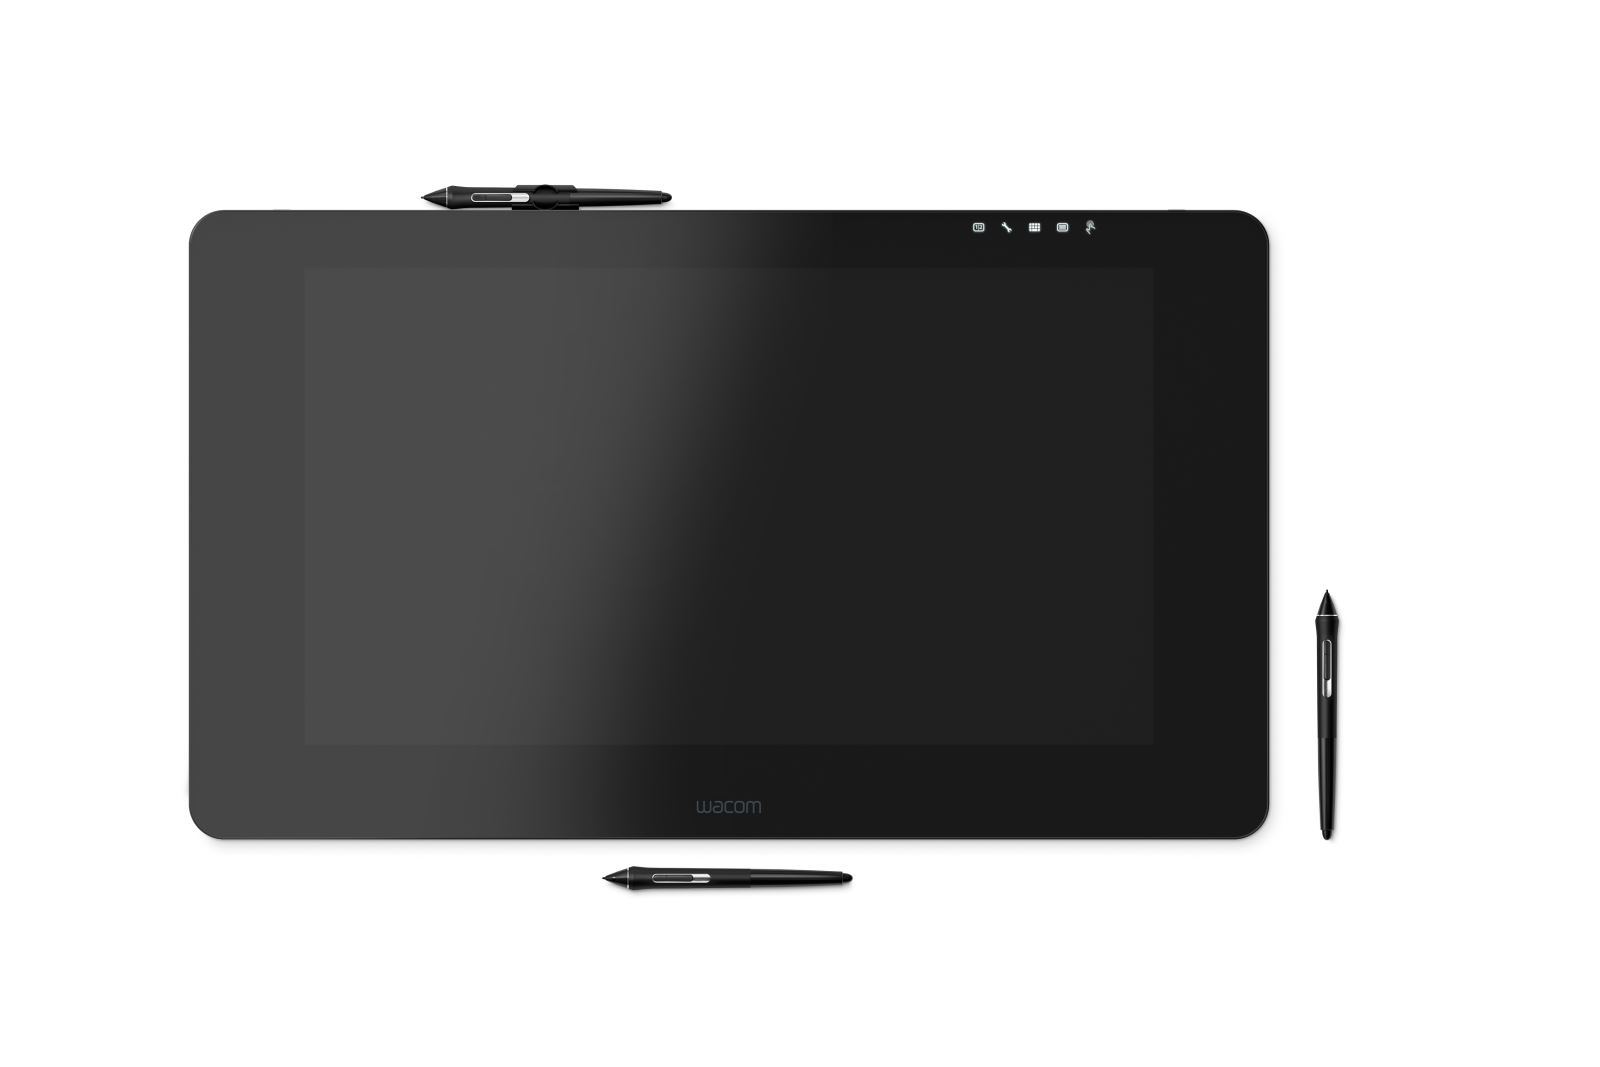 Wacom Cintiq Pro 24 5080lpi 522 x 294mm USB Black graphic tablet